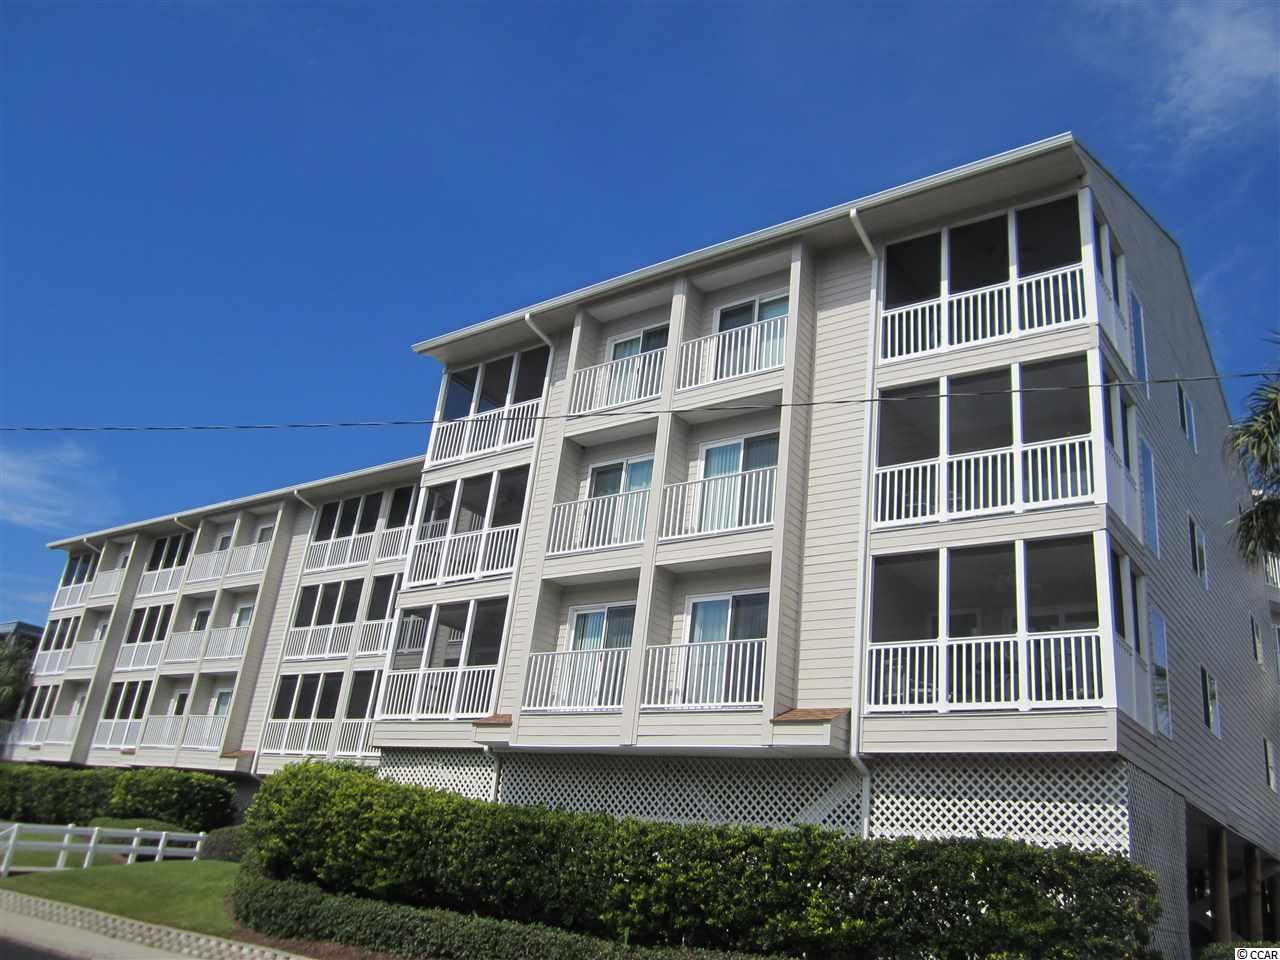 This 3 bedroom condo at  Pelicans Watch is currently for sale